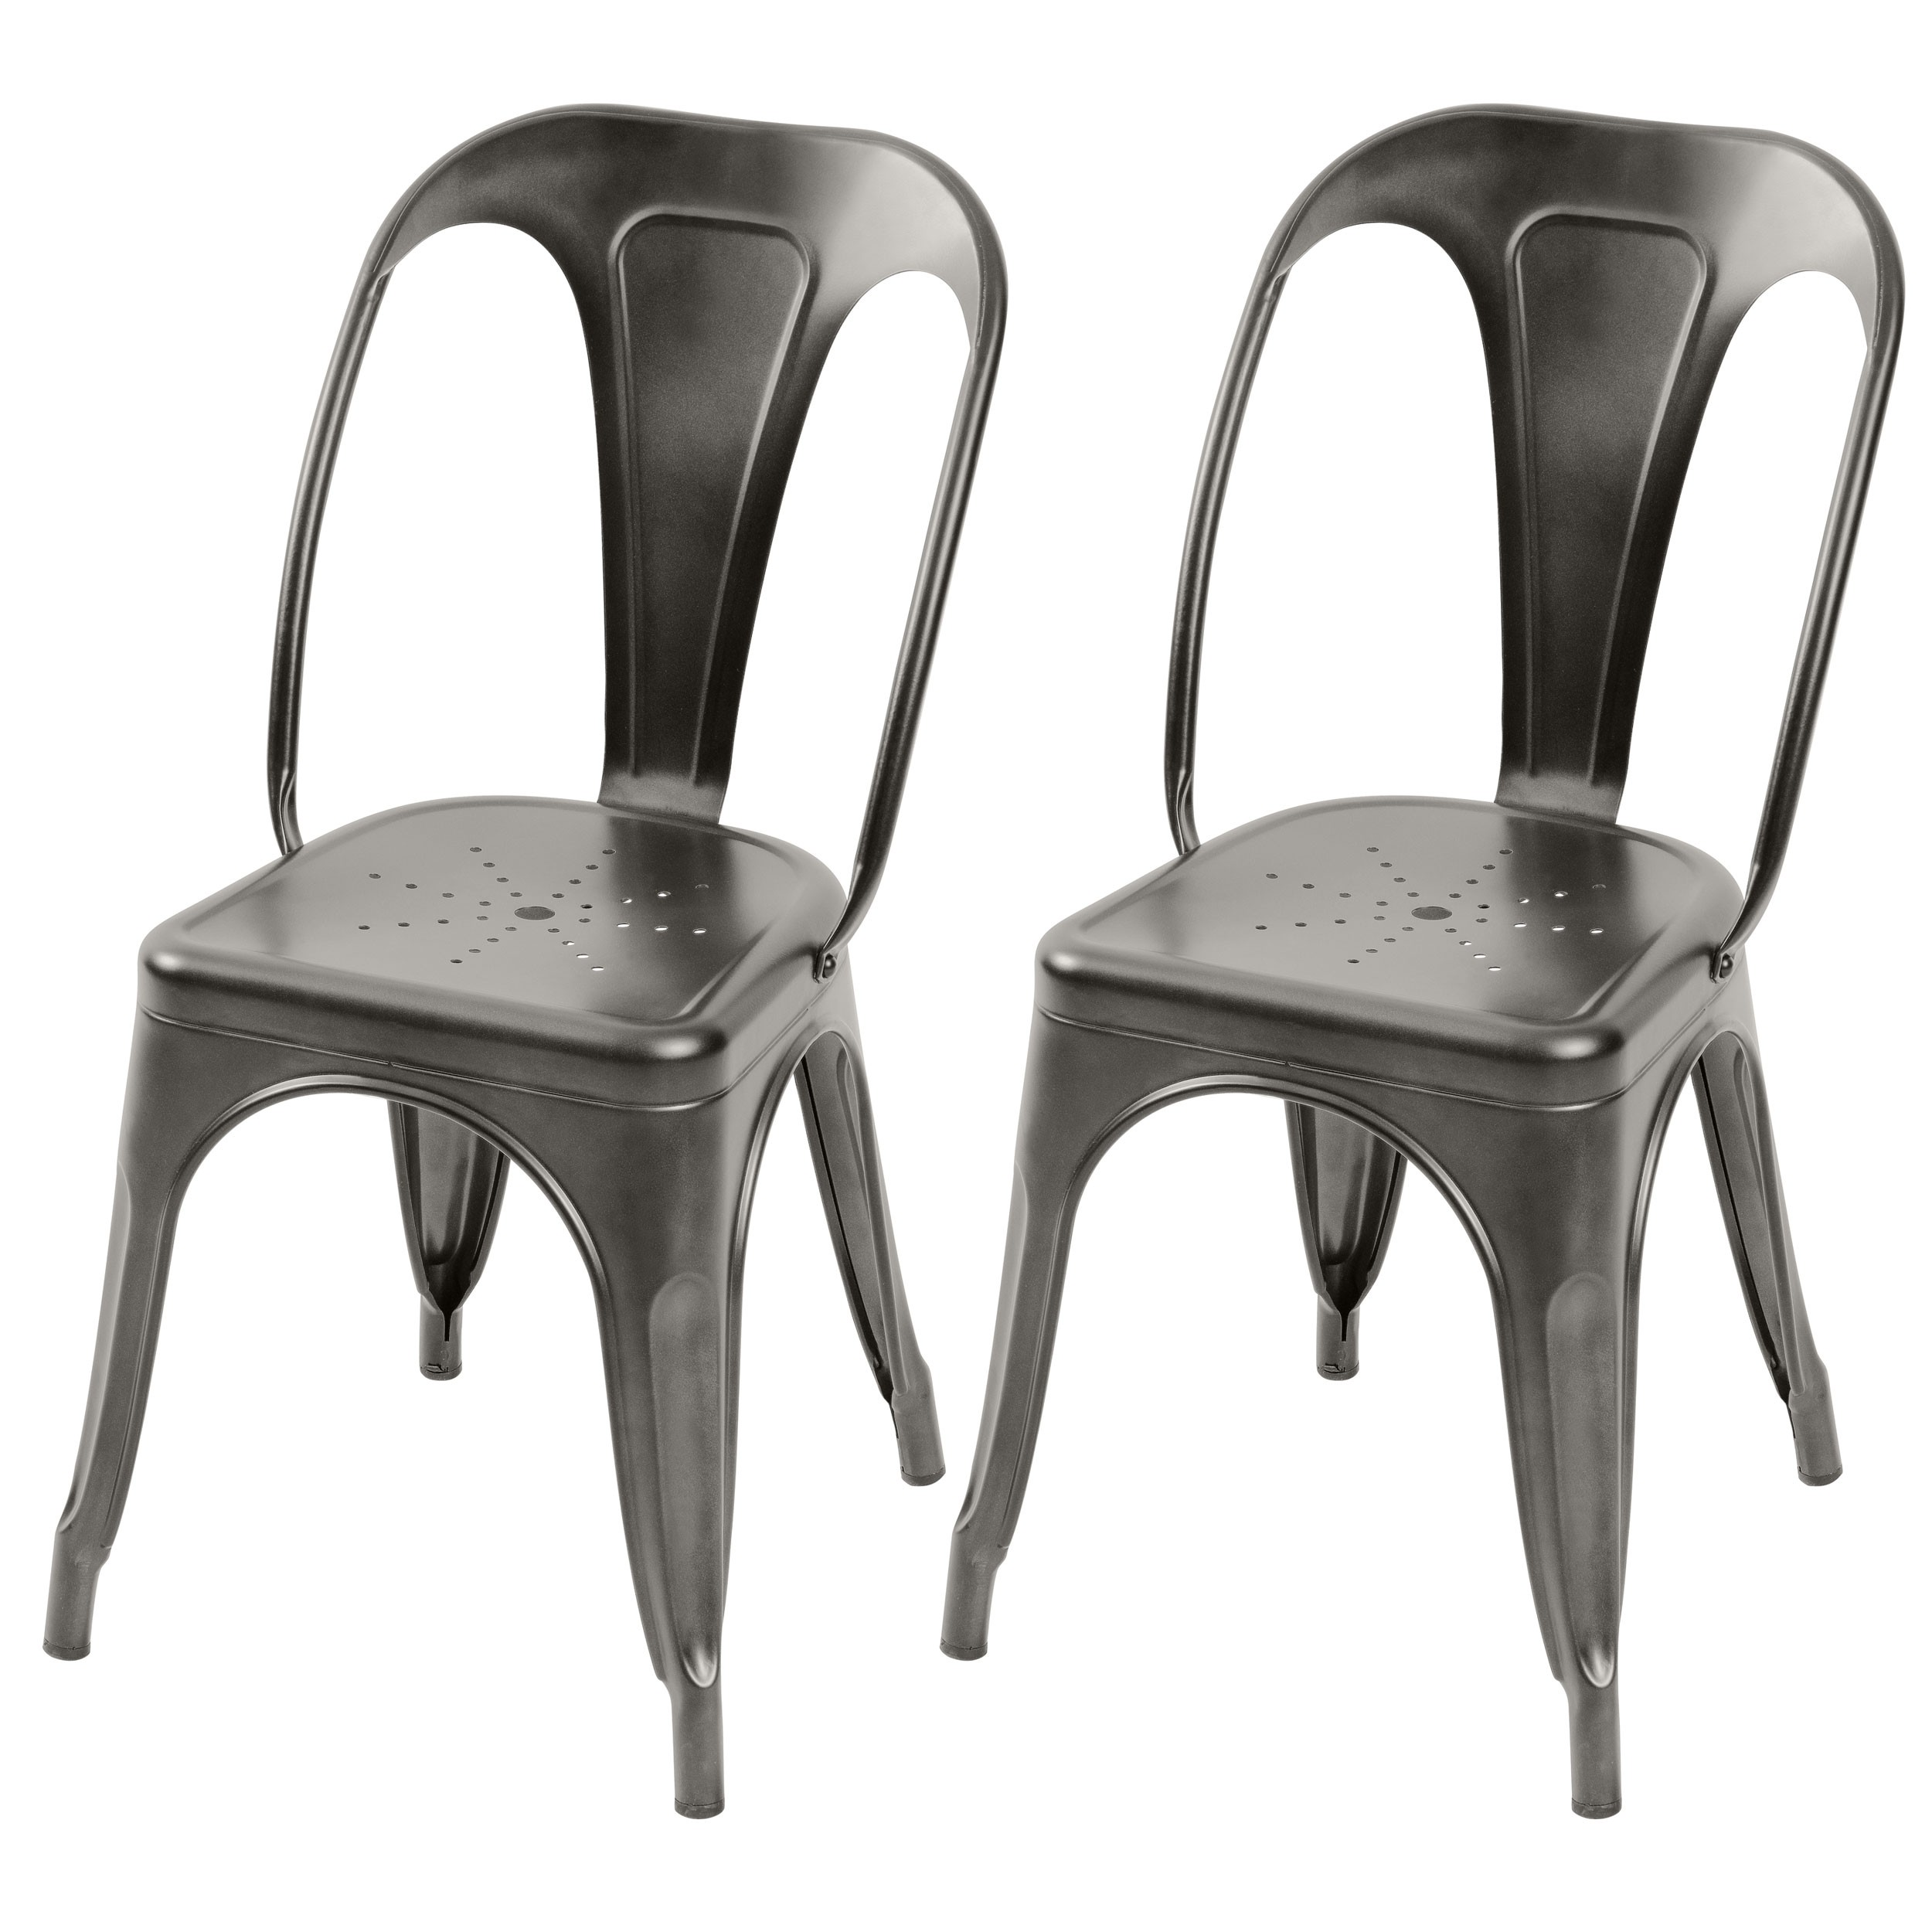 Magasin Chaises Industrielles Chaise Indus Gris Anthracite Lot De 2